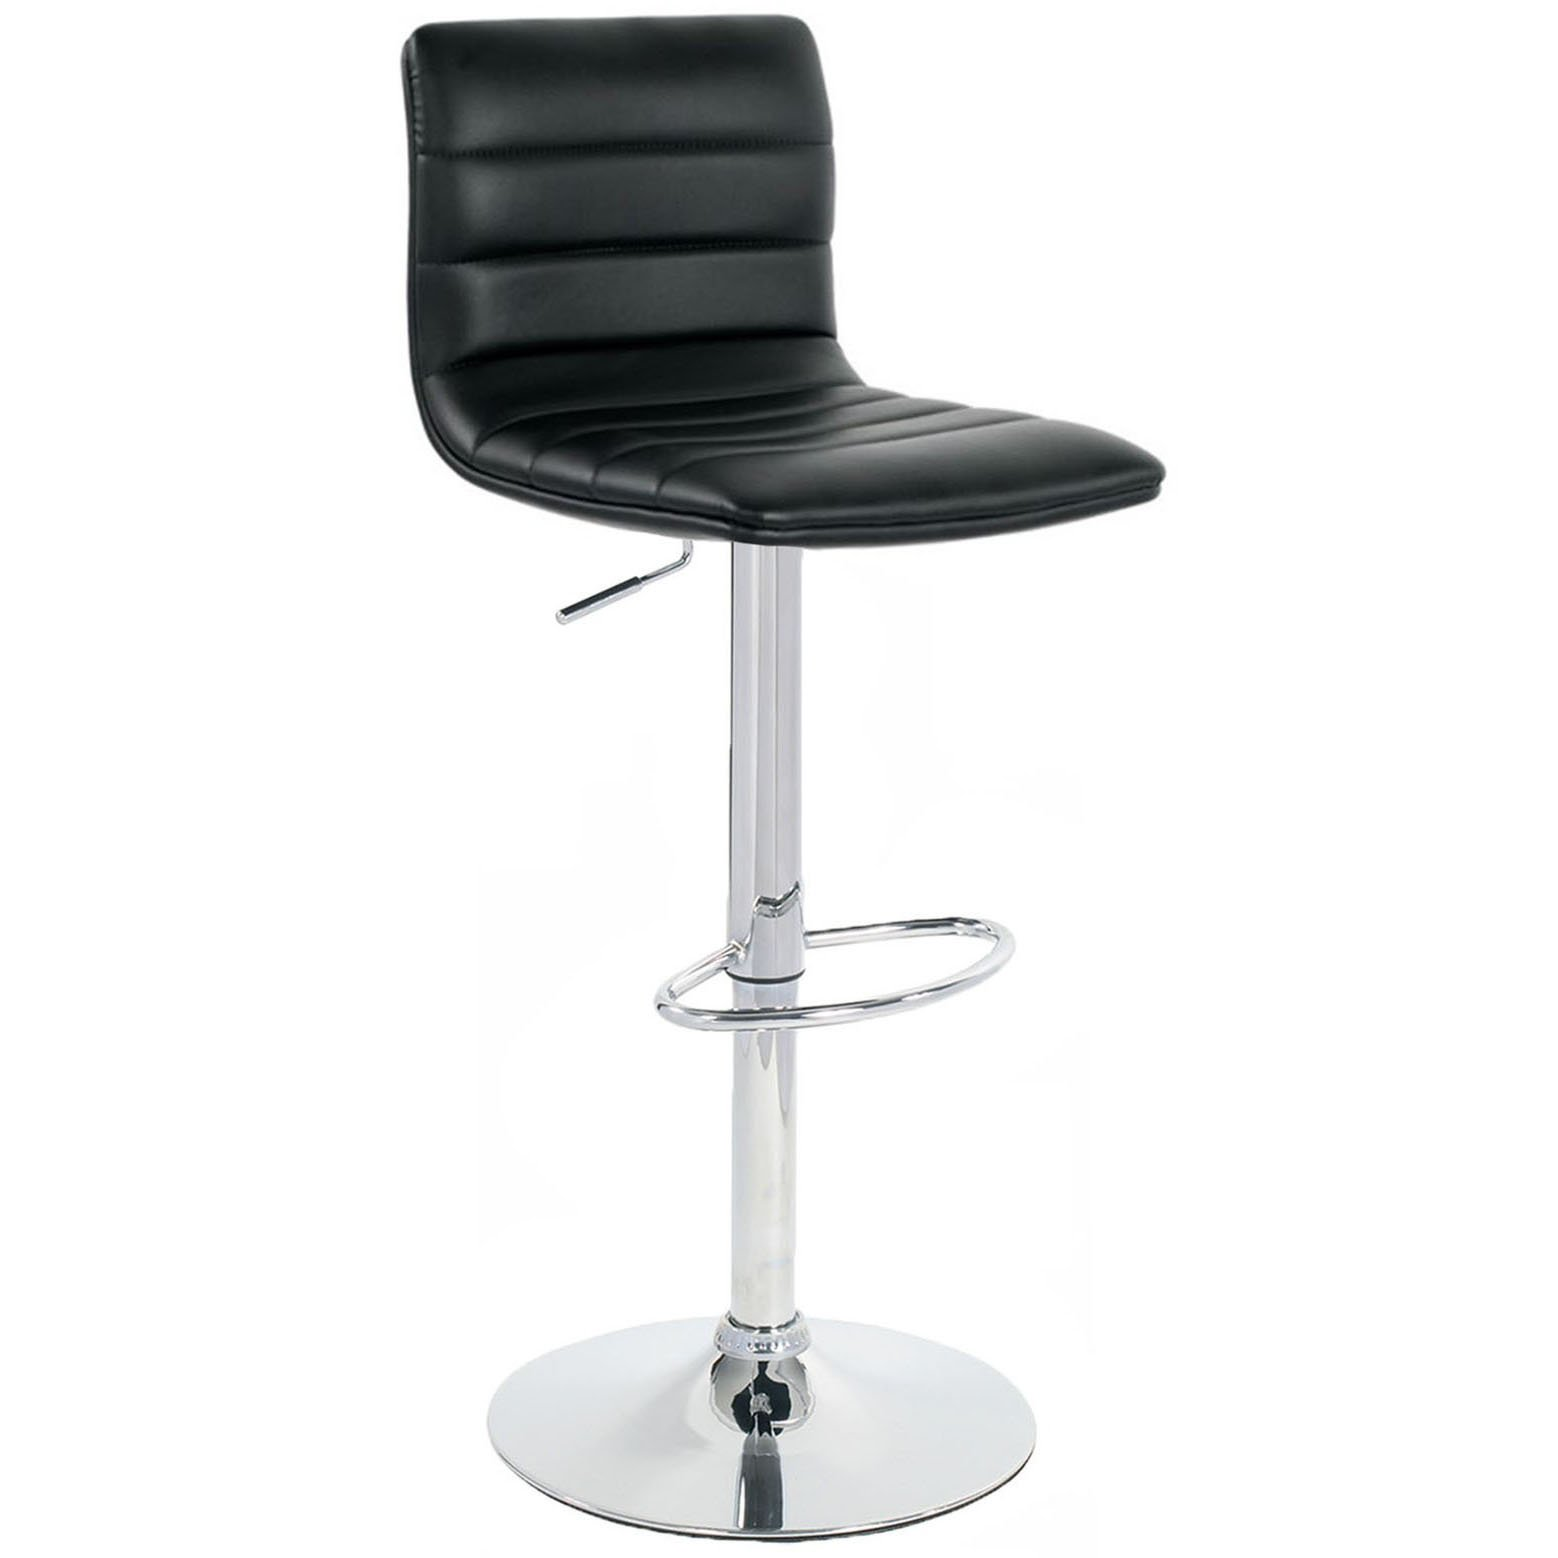 Aldo Bar Stool - Black Product Image